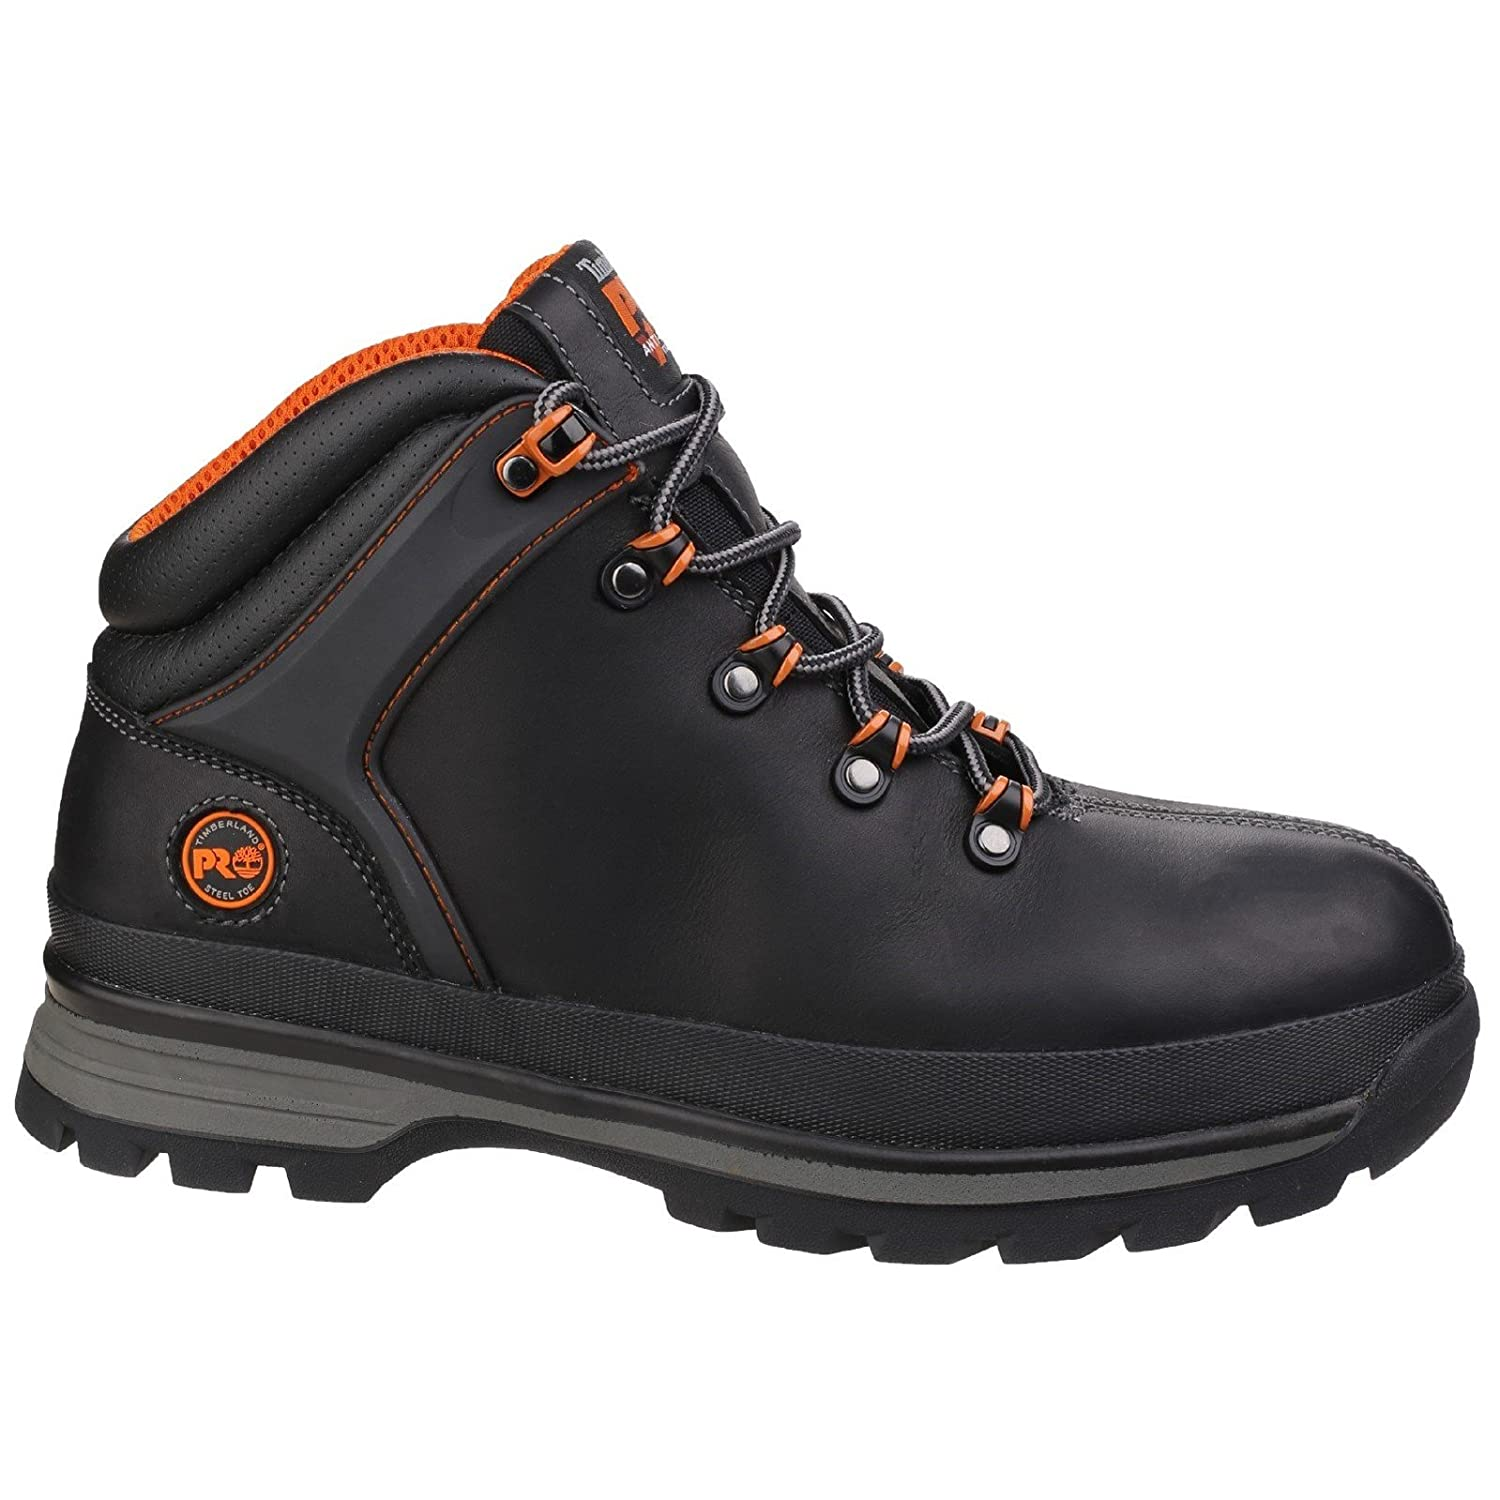 Timberland Boots Size 5 Colours Are Striking Boys' Shoes Clothing, Shoes & Accessories